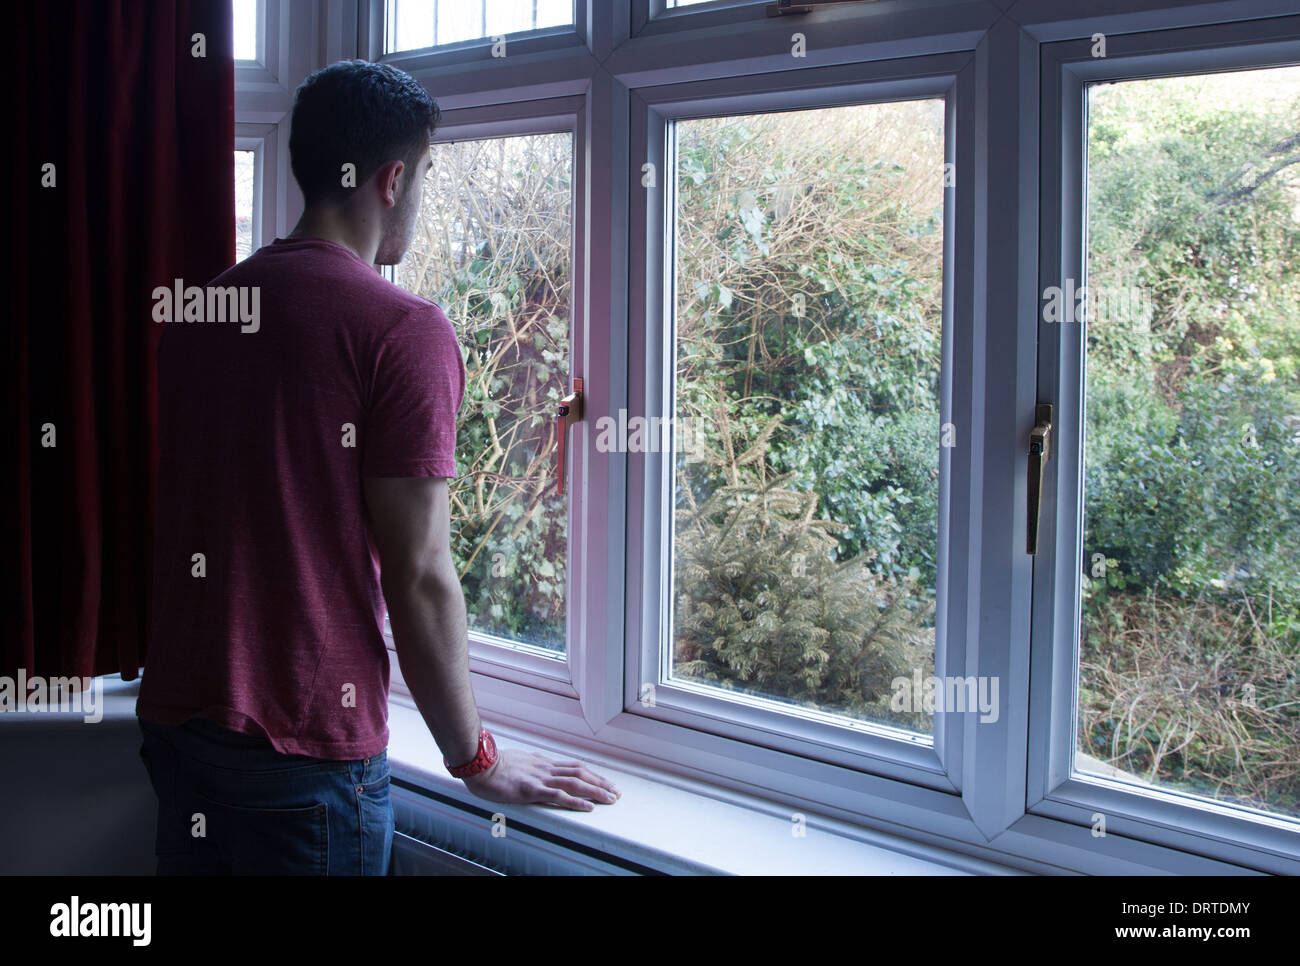 Young man indoors looking out through a window, over shoulder view. - Stock Image